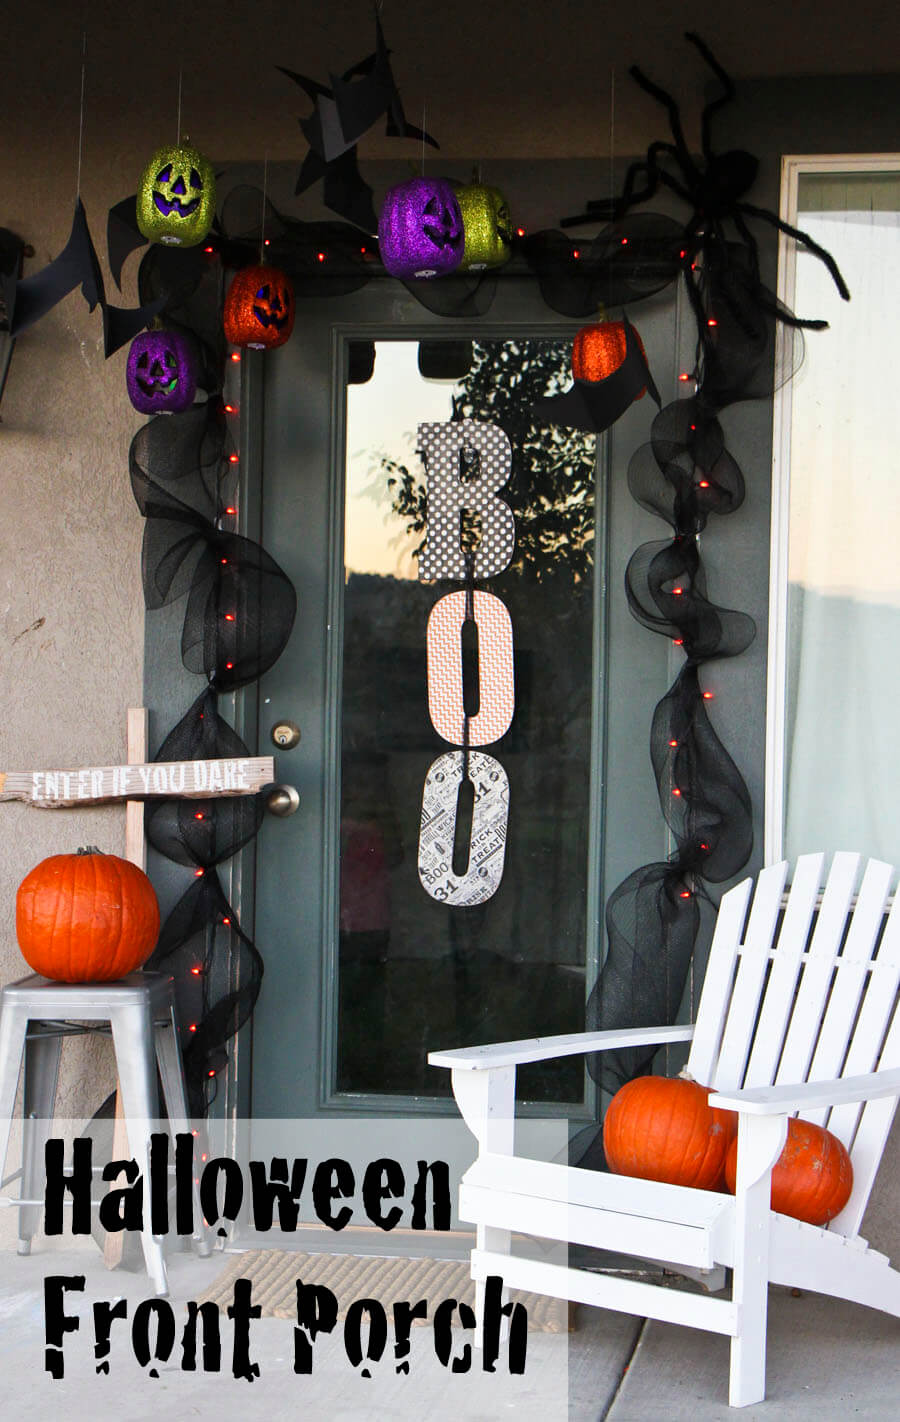 Enter Here for Halloween Fun | Scary DIY Halloween Porch Decoration Ideas | vintage halloween porch